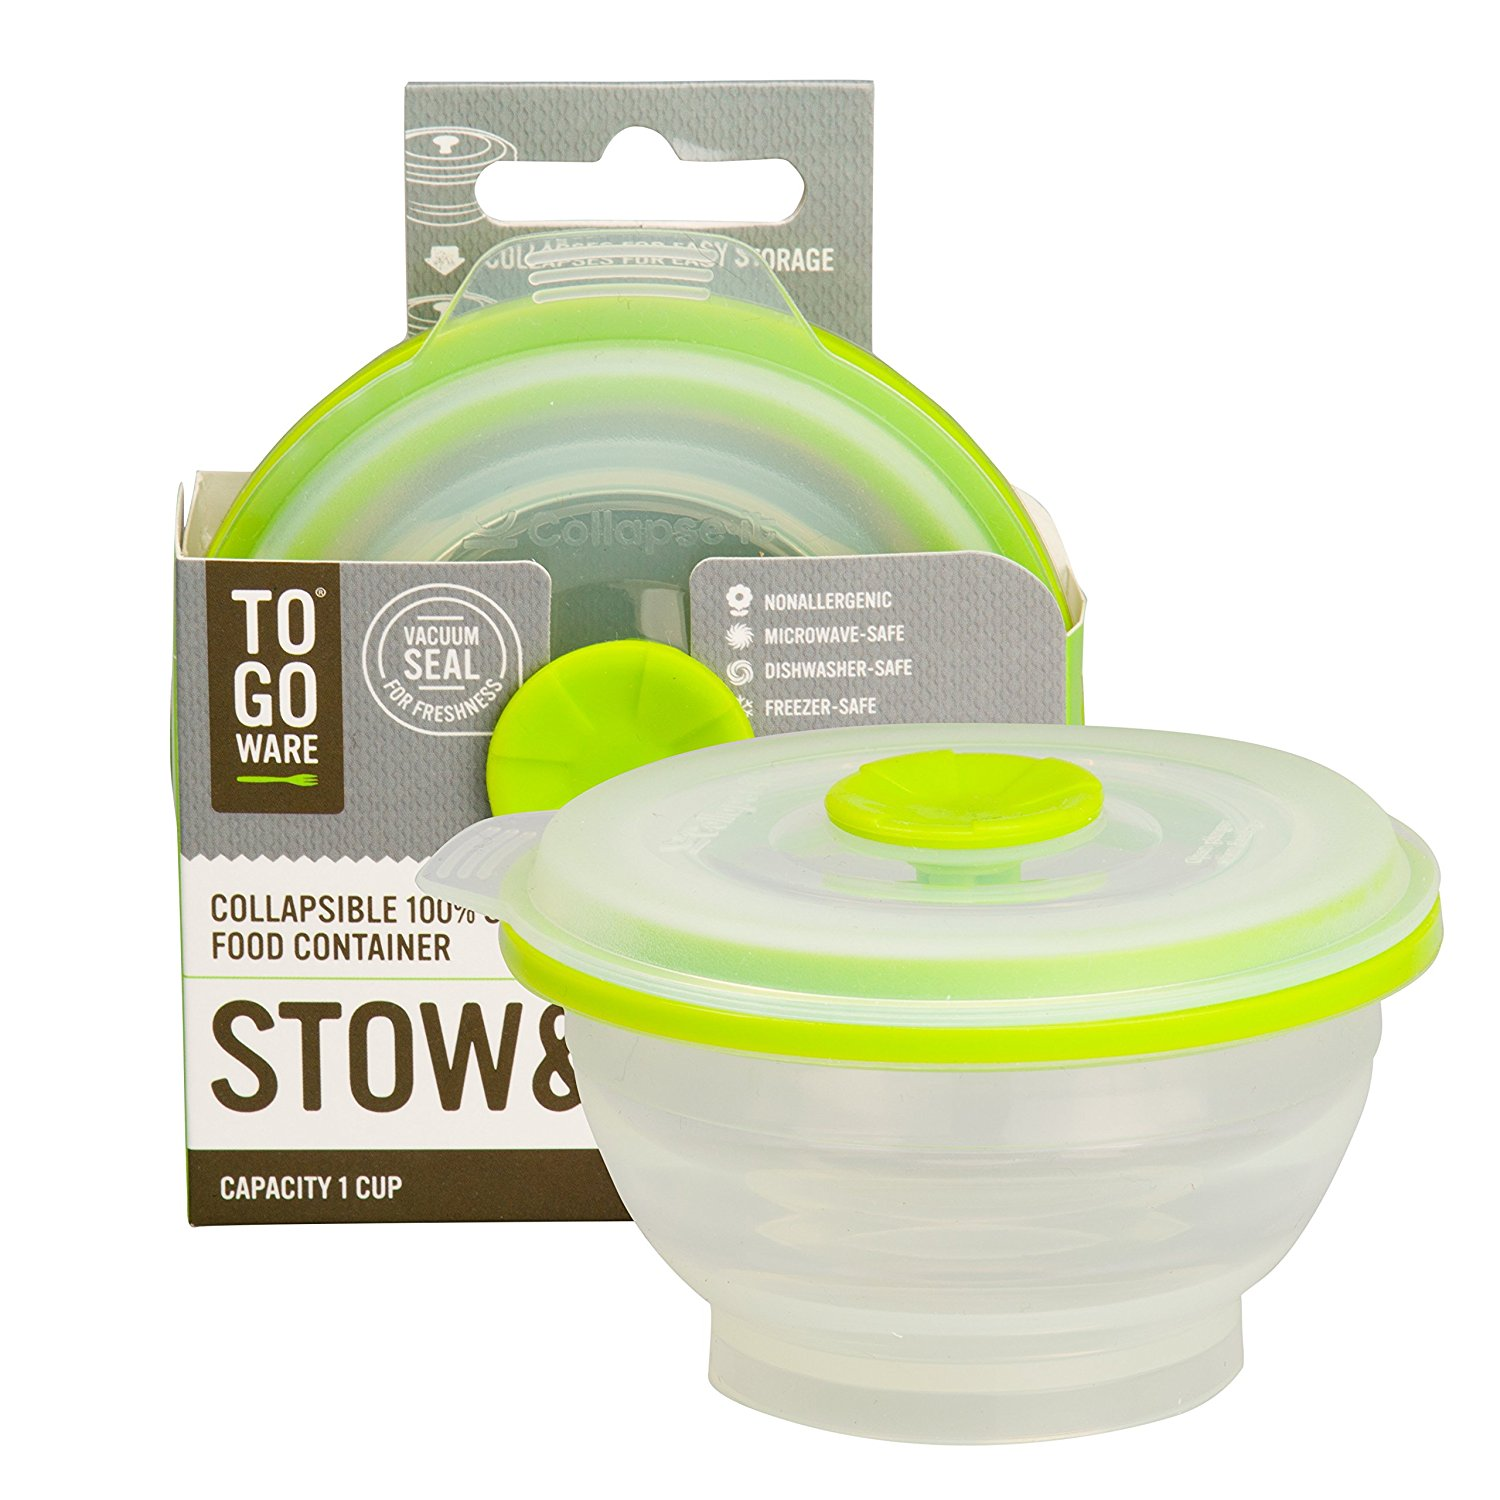 Collapsible Silicone Food Storage Container With Pull Out Vent And